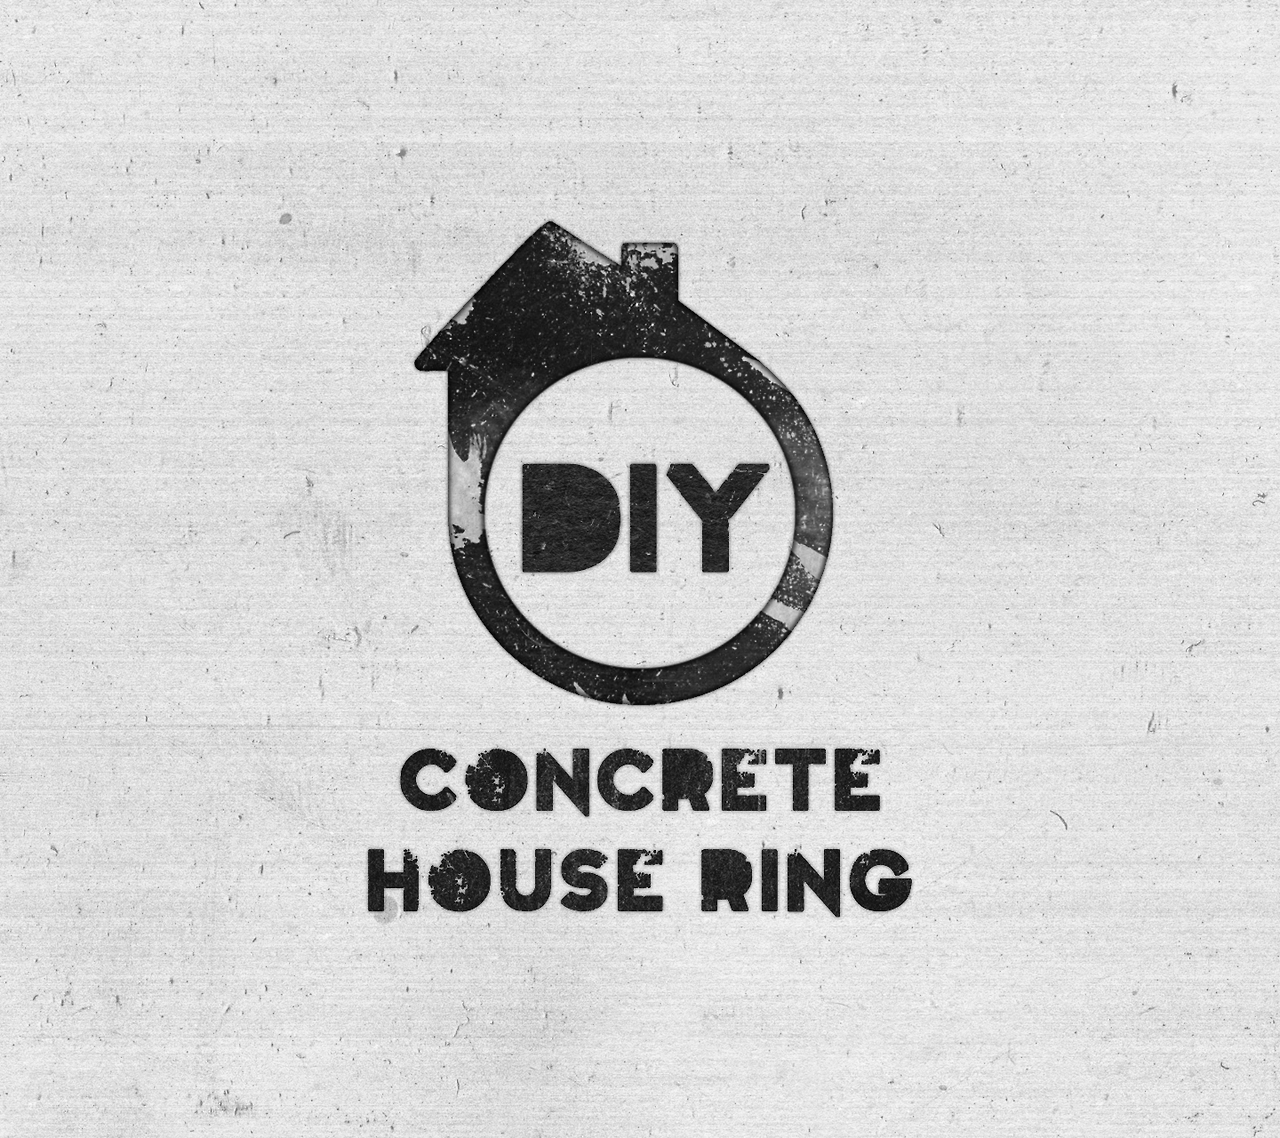 ... Design Studio - Logo design for The DIY Concrete House Ring by